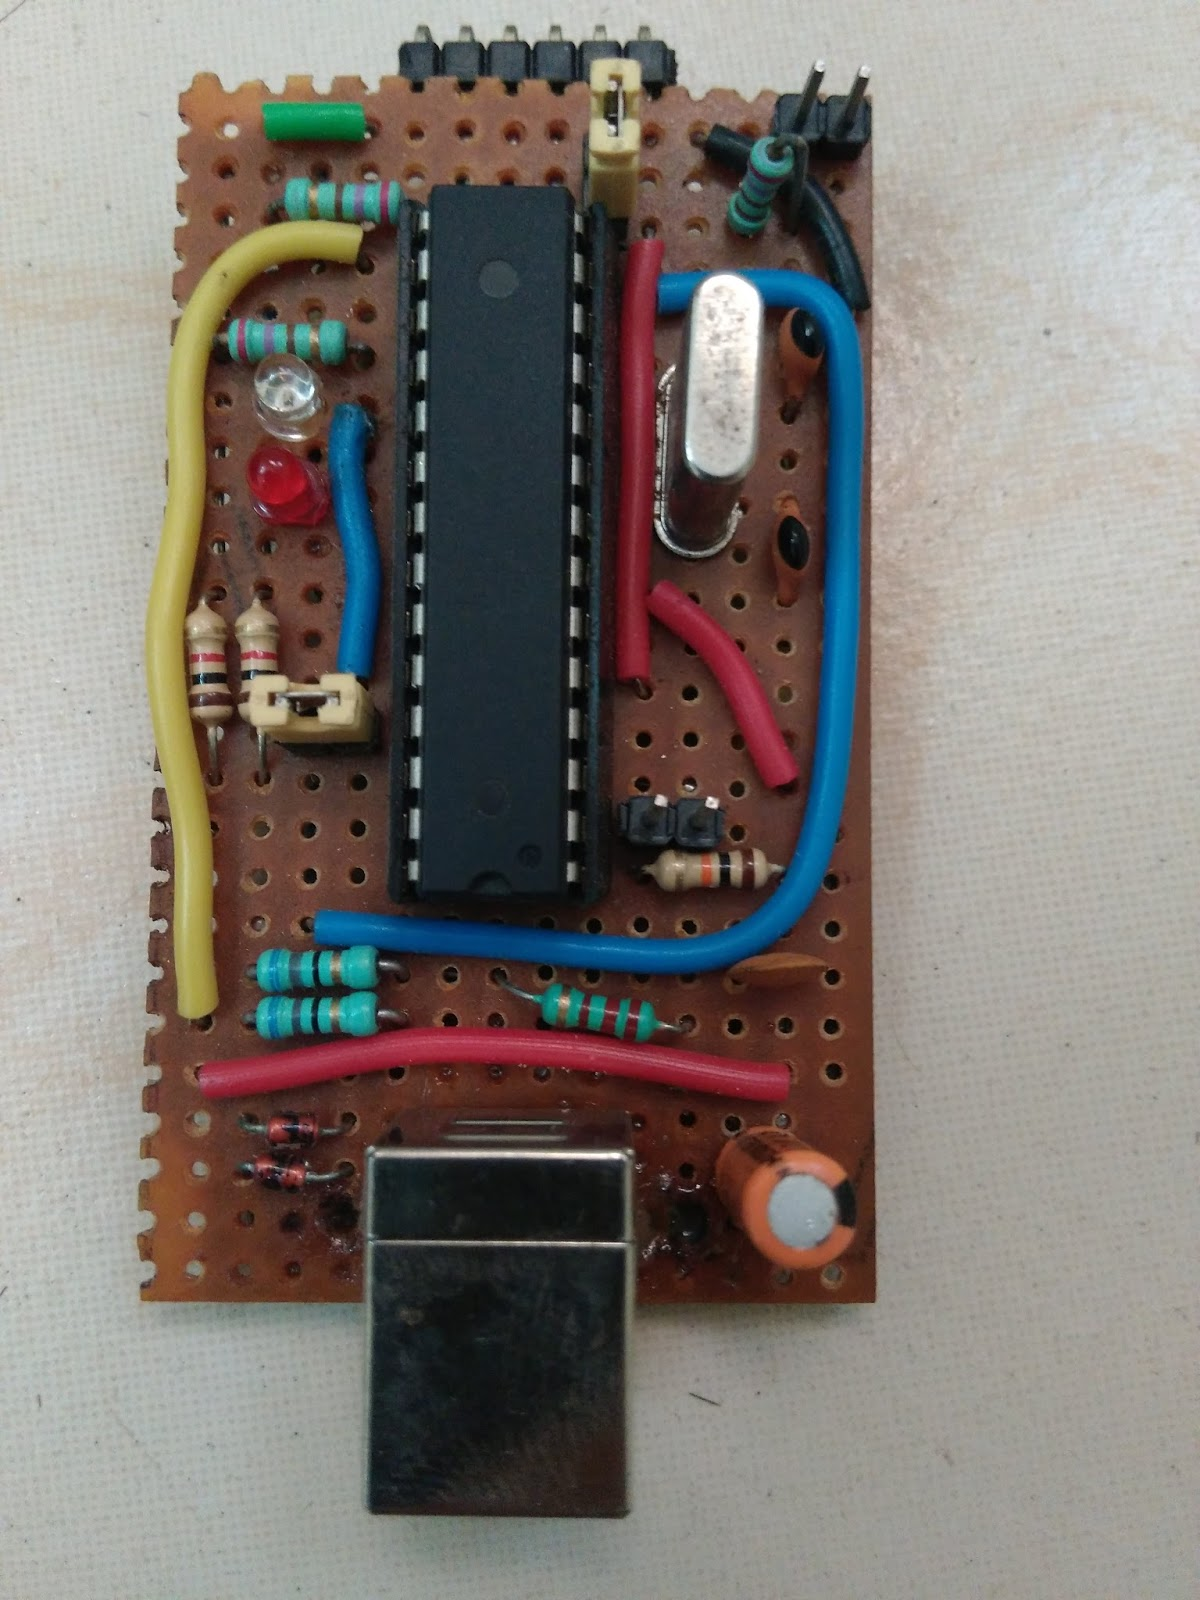 My Experiments And Results Usbasp Programmer For Atmel Avr Usb Using Atmega8 Installation